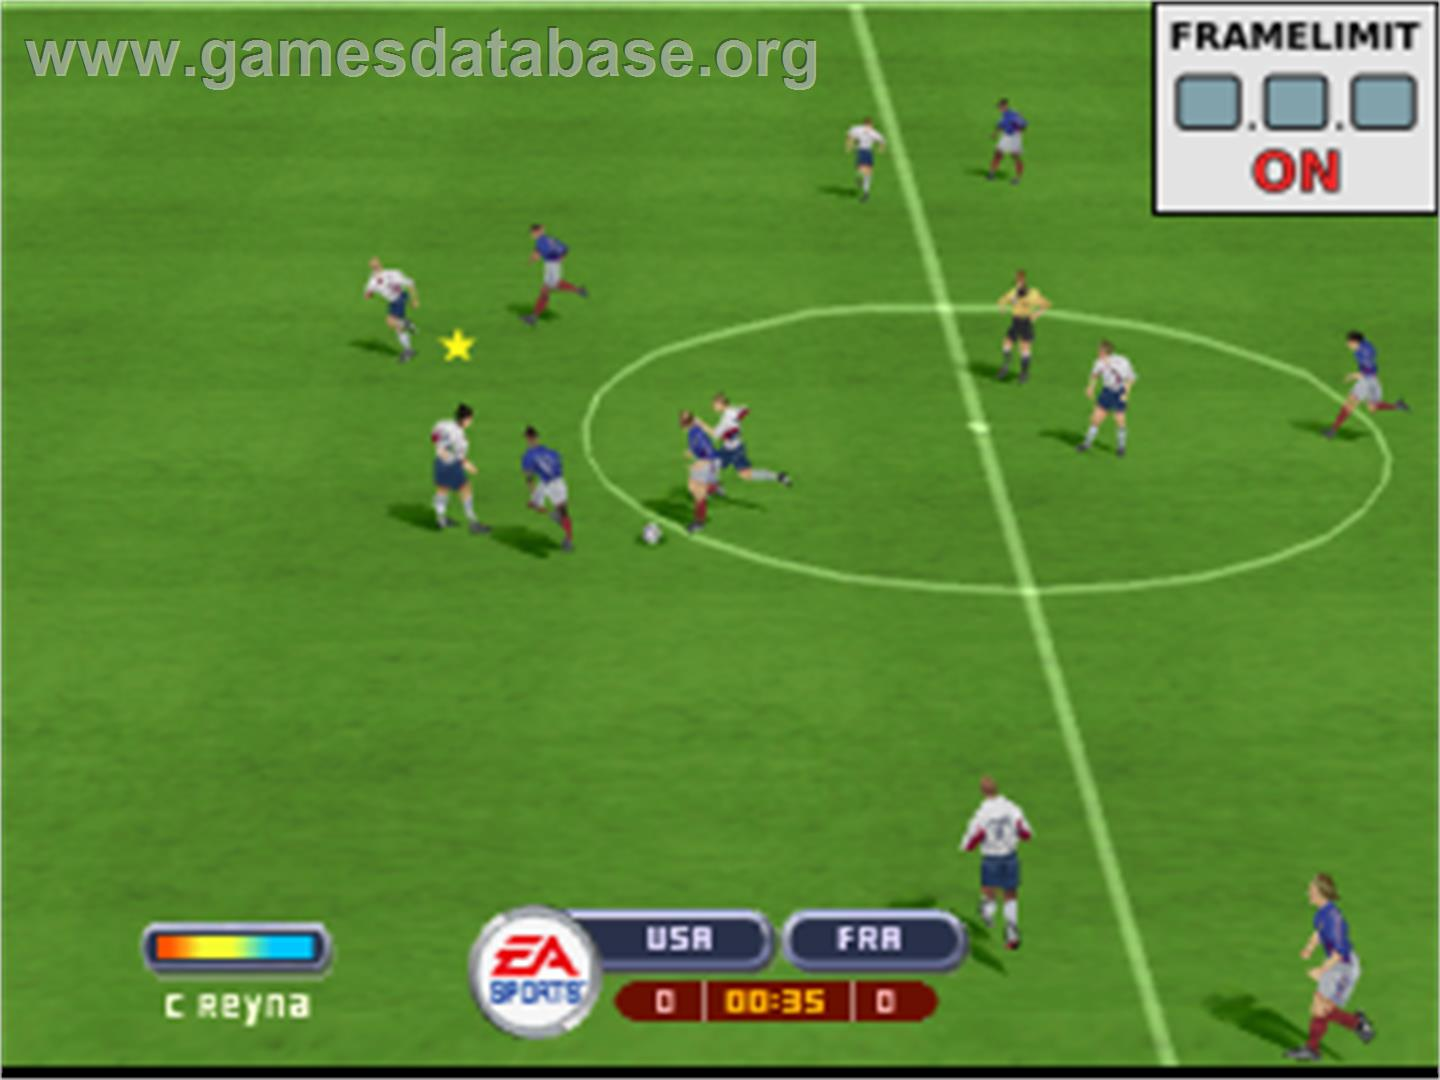 2002 FIFA World Cup Sony Playstation Games Database